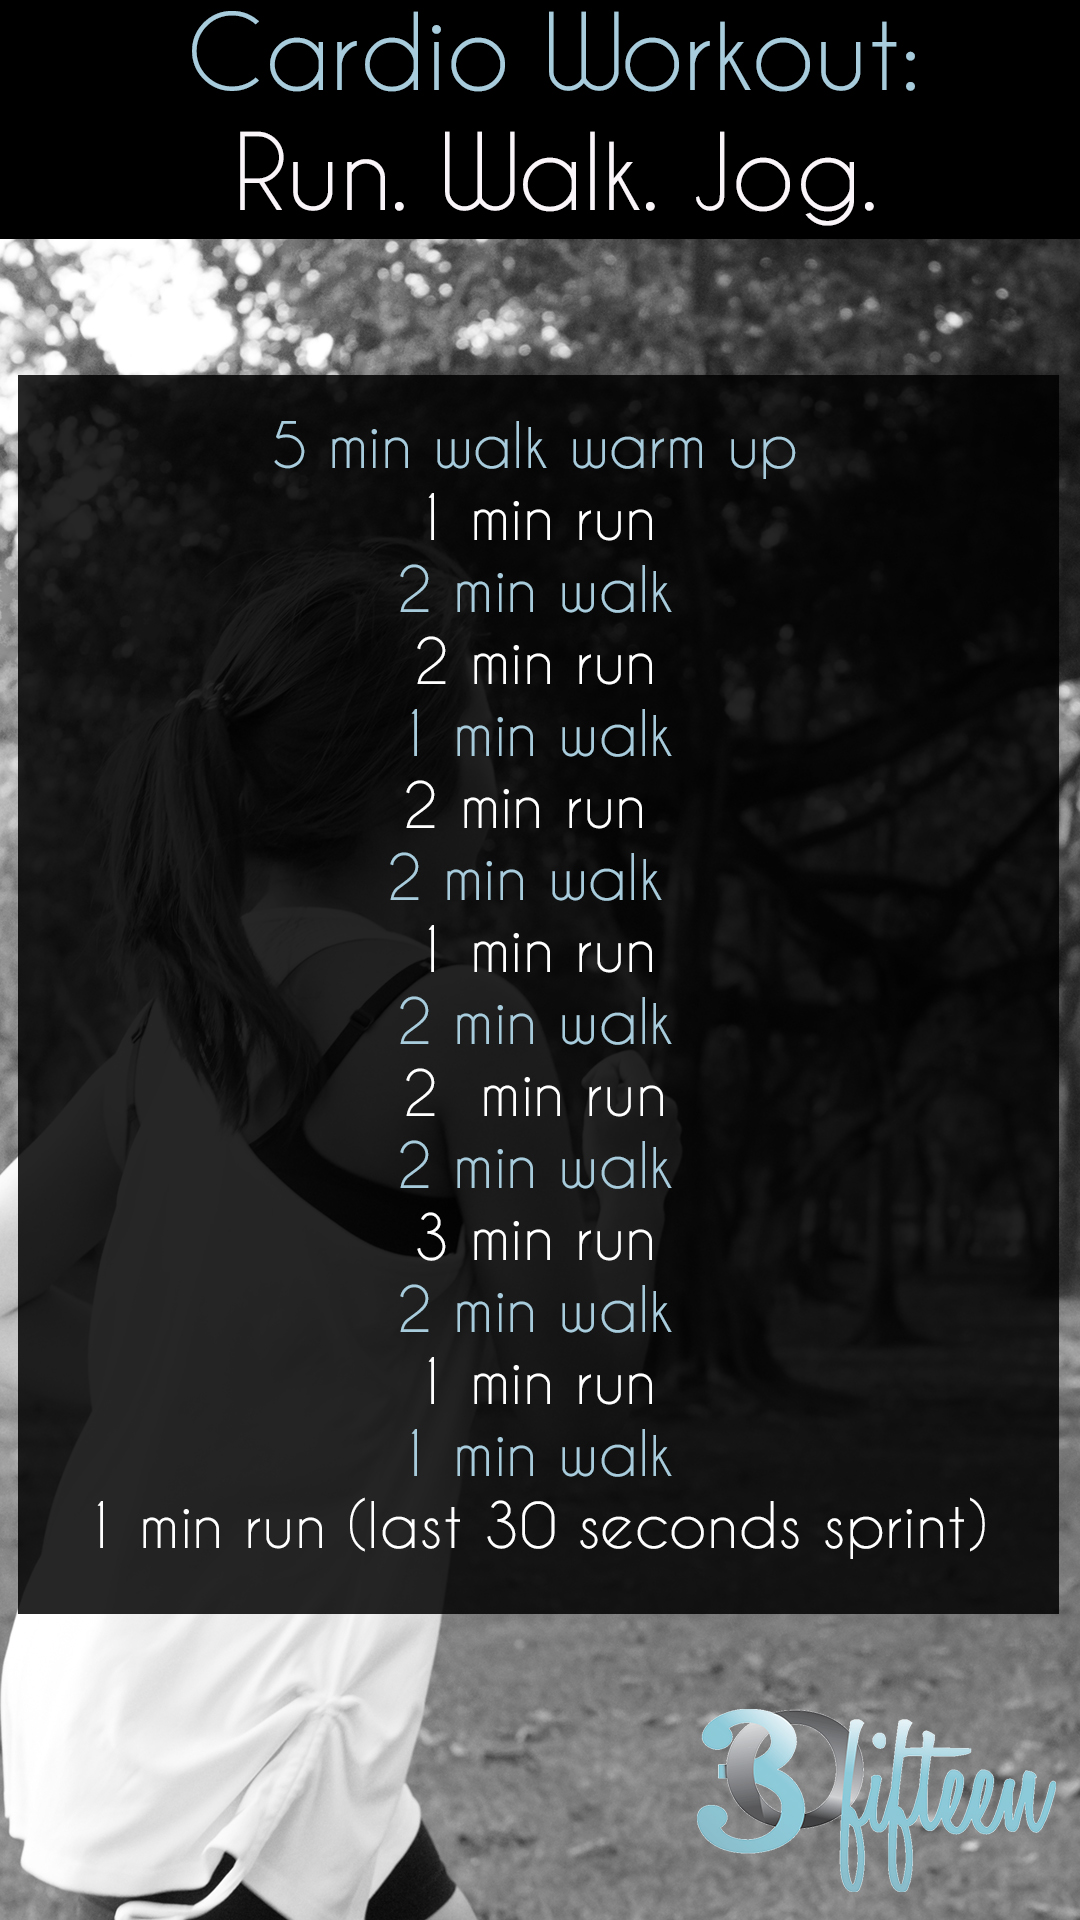 Run Walk Jog cardio workout